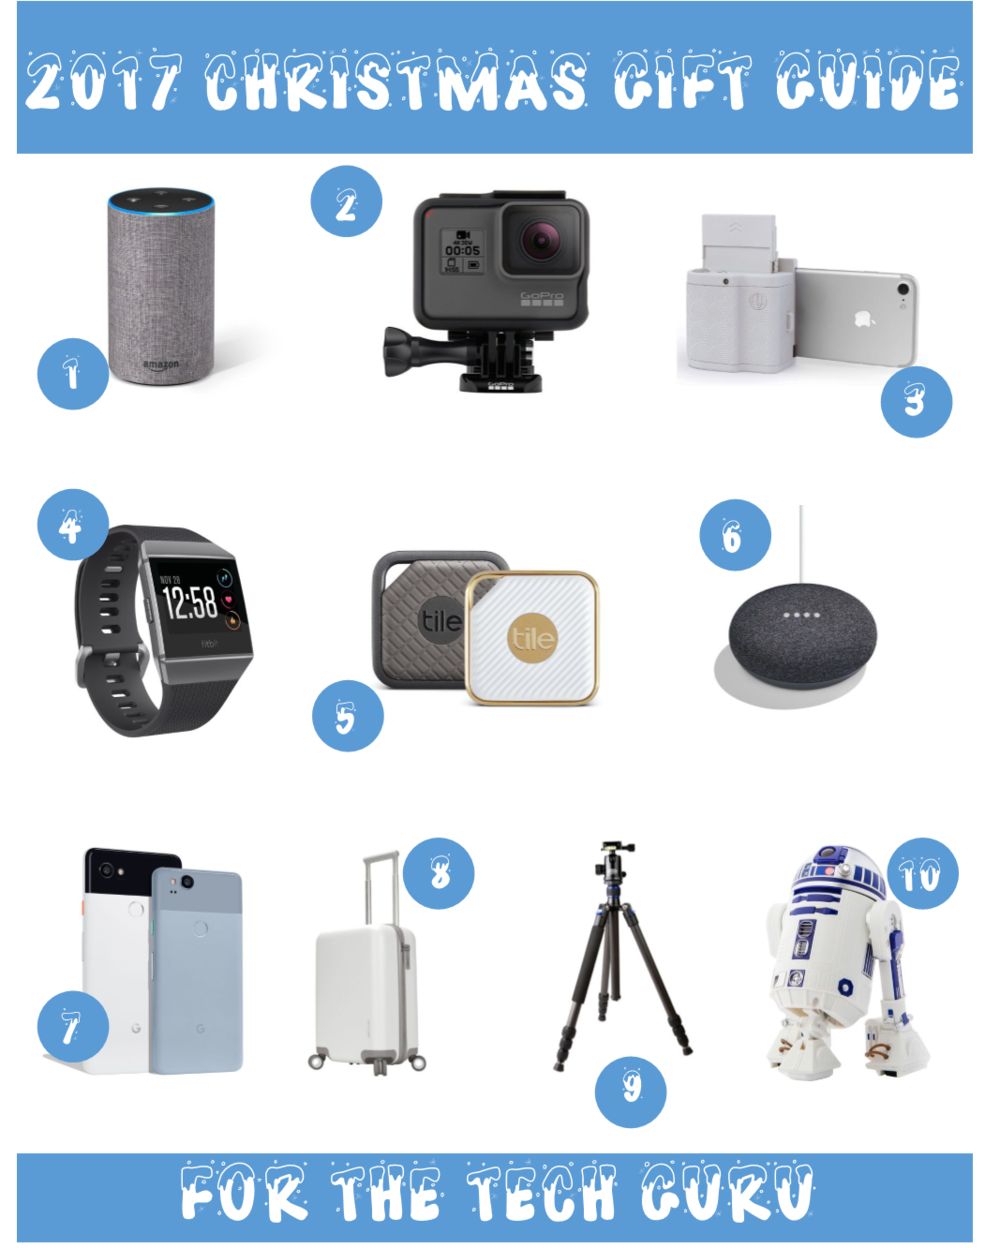 Tech Guru Gift Guide.png